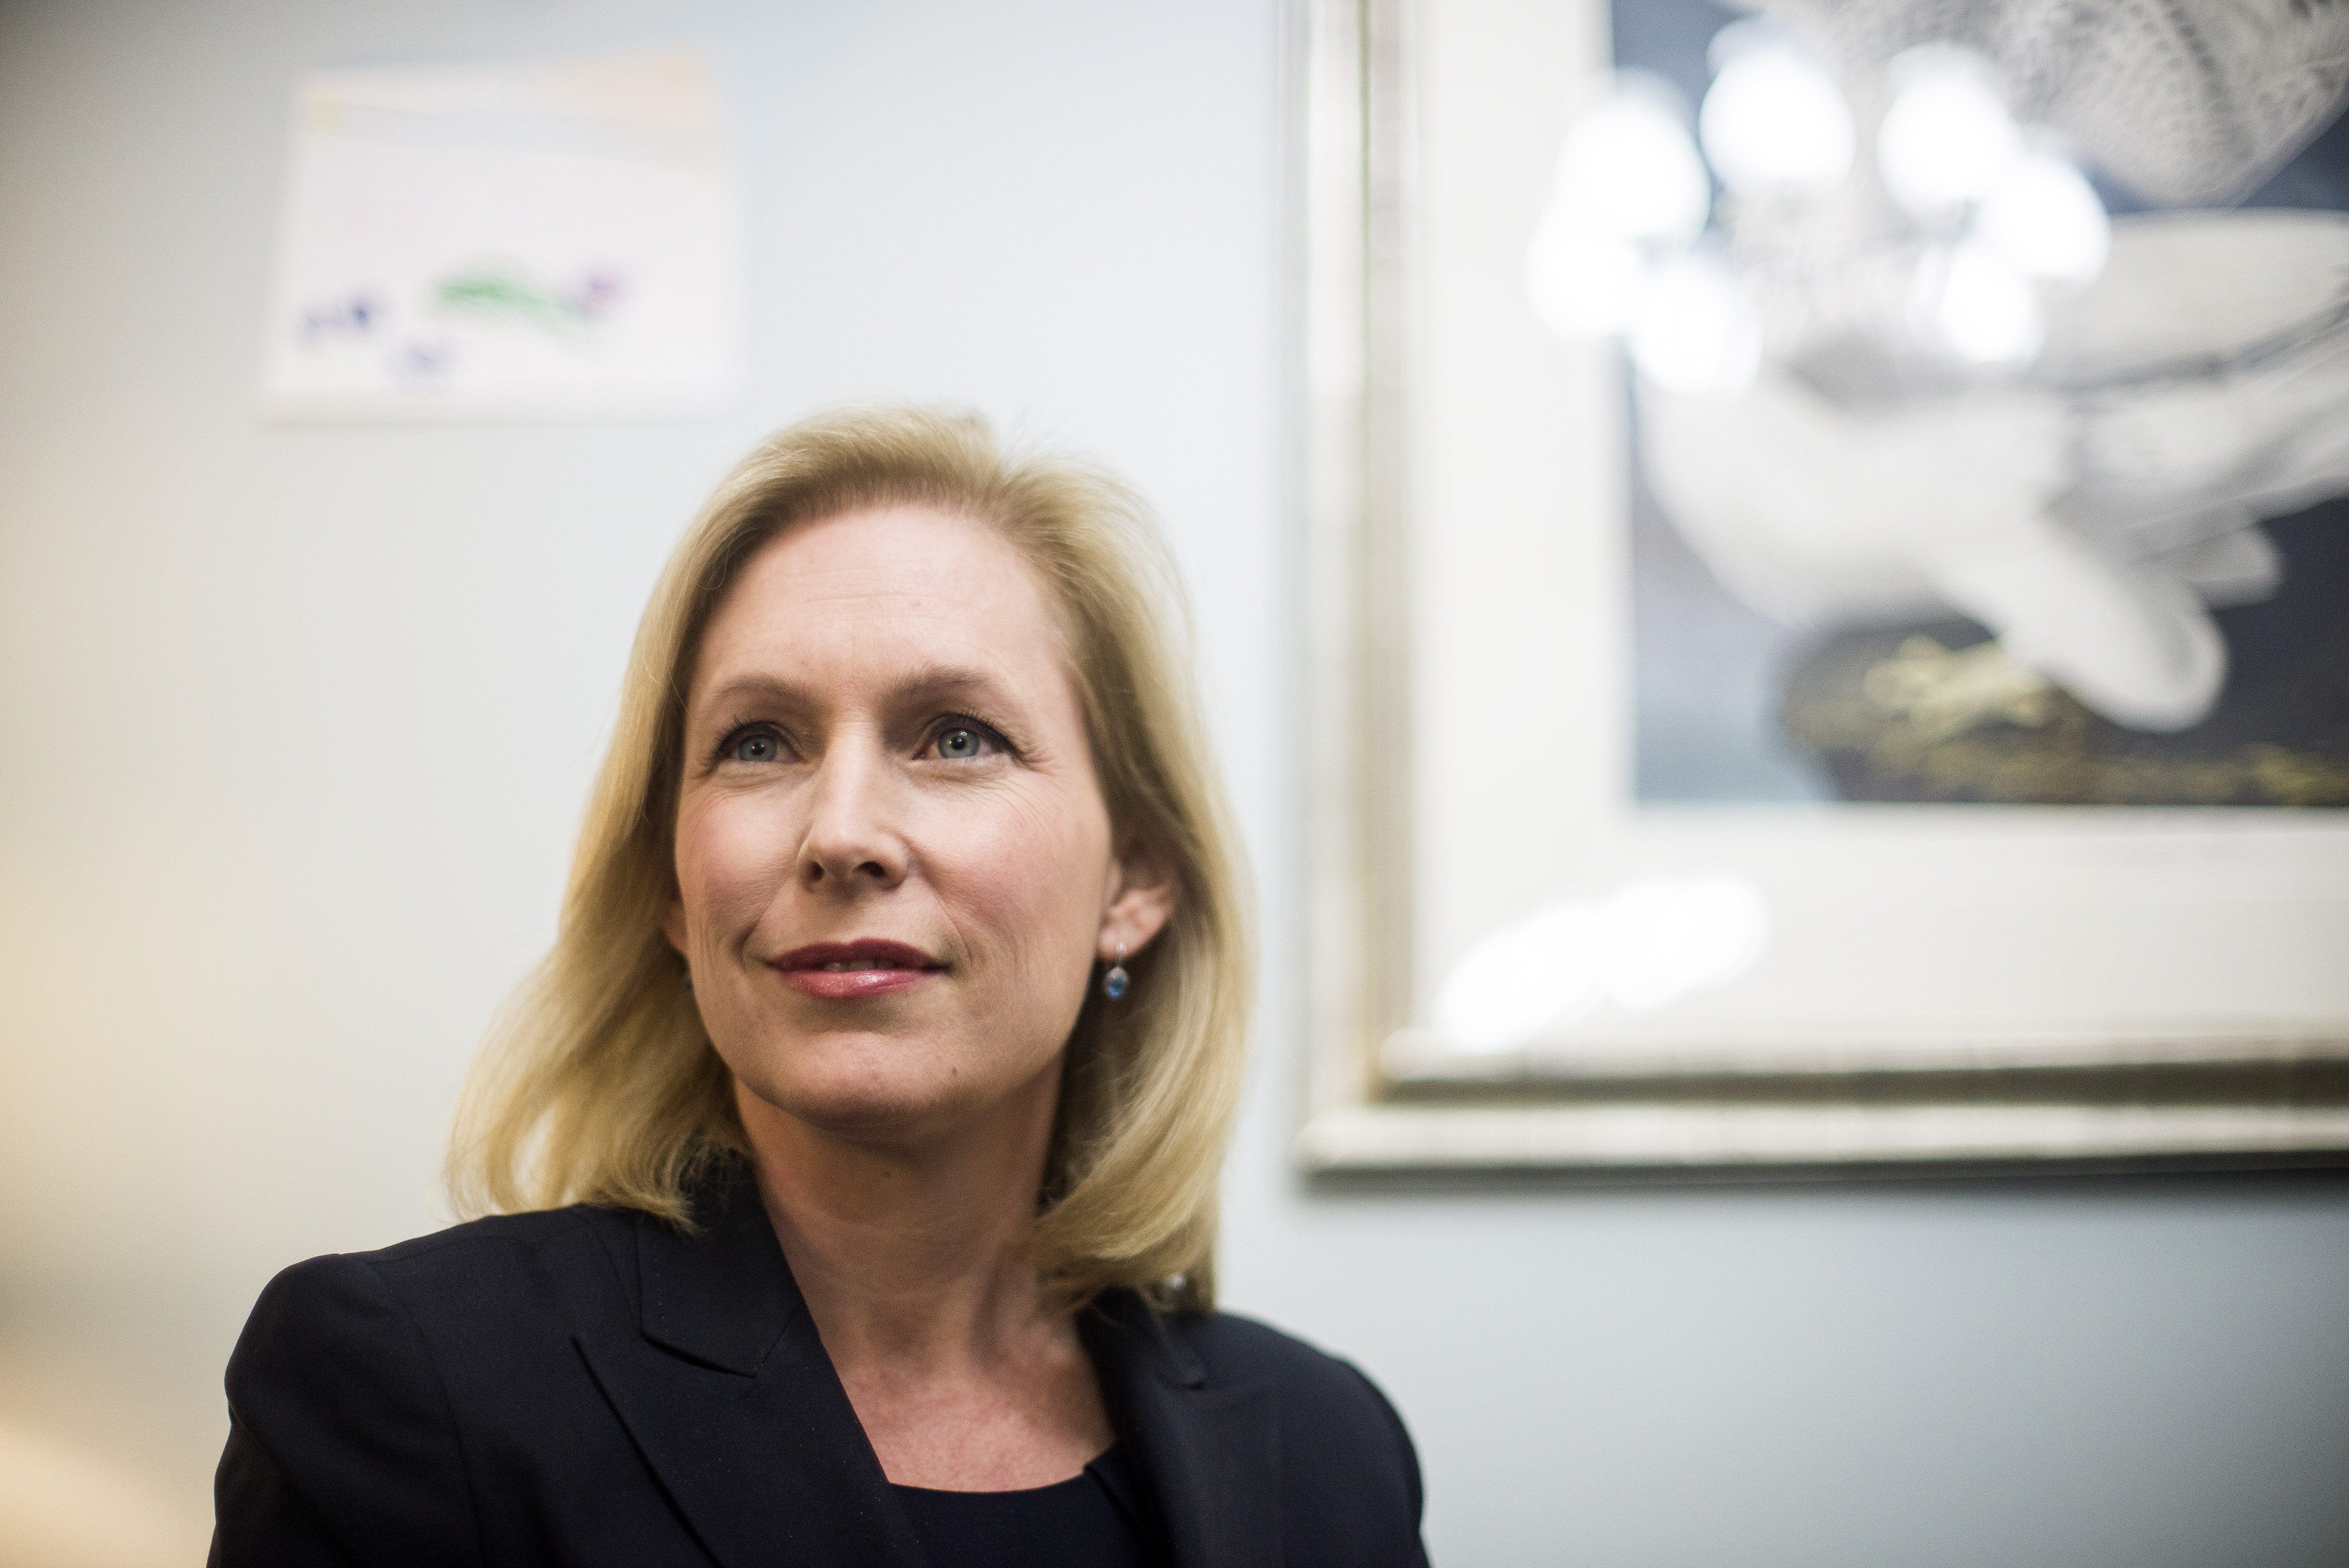 Sen. Kirsten Gillibrand (D-N.Y.) is seen in her office on Capitol Hill in Washington, D.C., in early December.